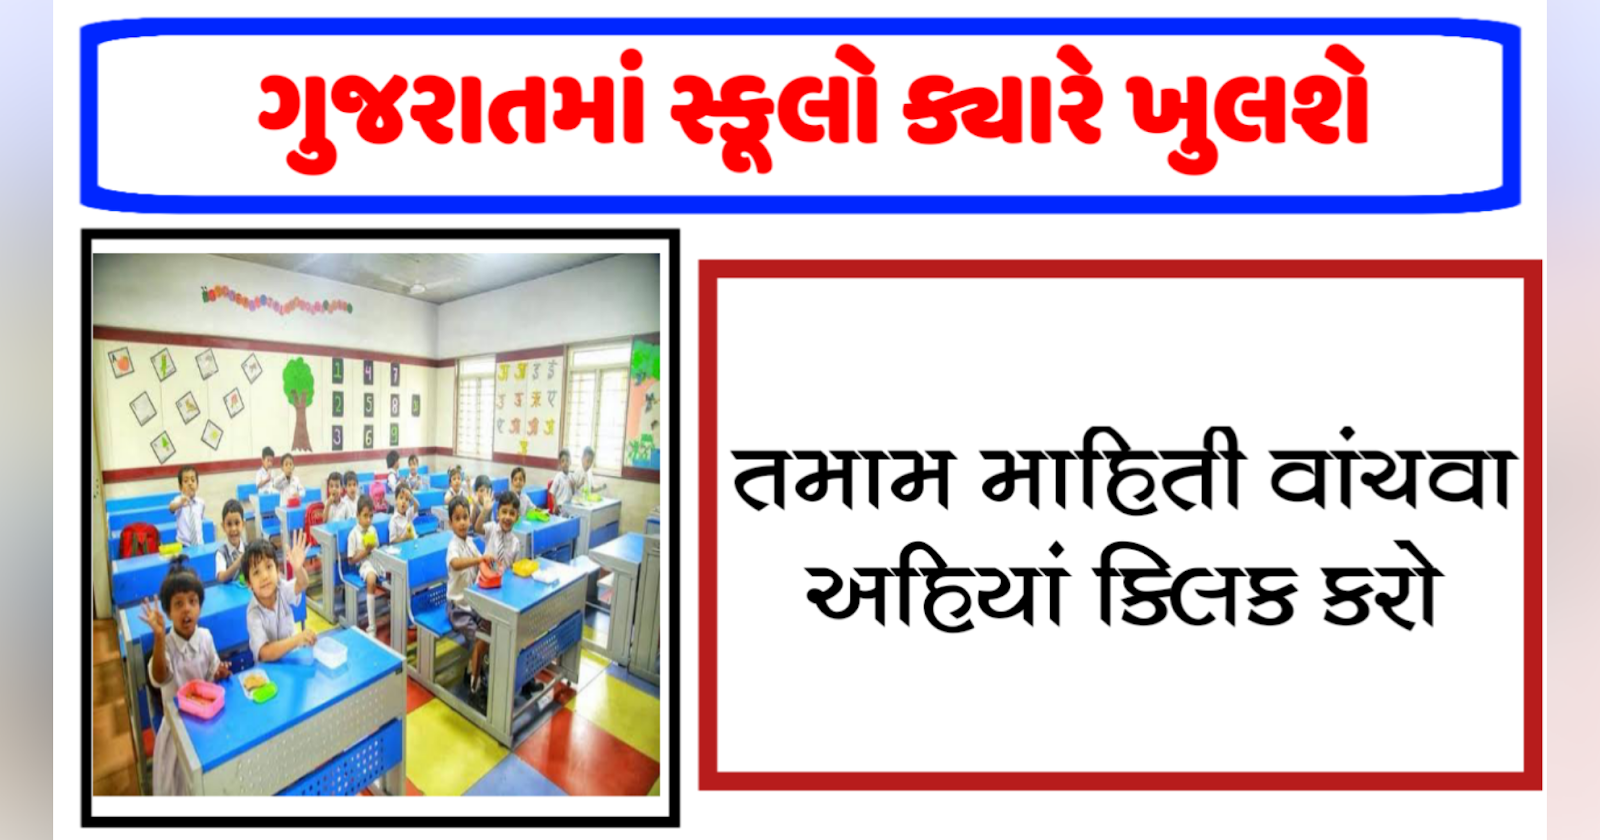 Gujarat School Open Related News